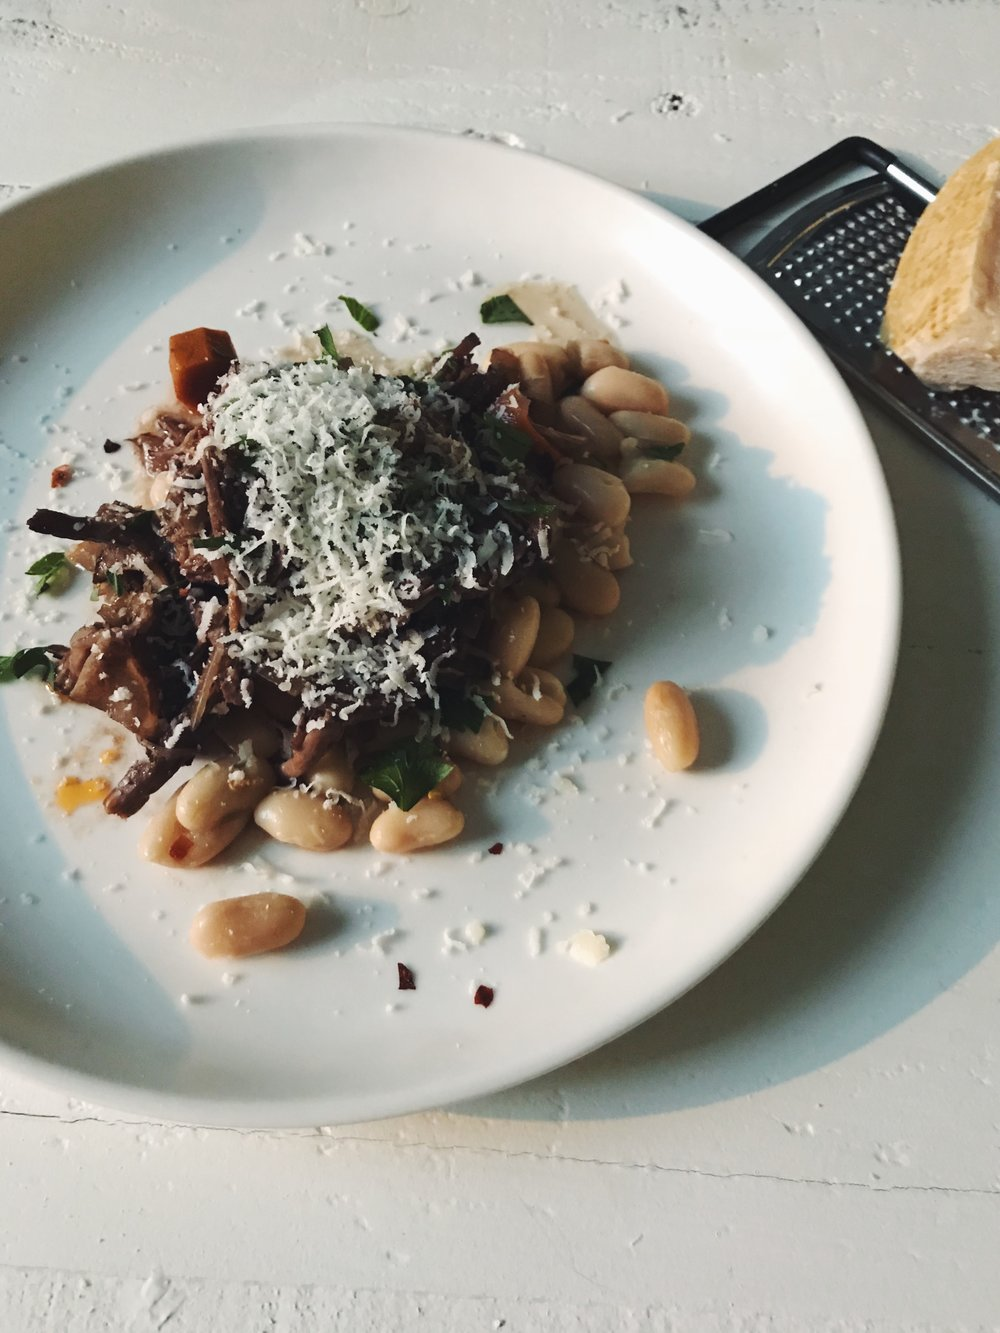 Dinners with Ease - by Cara Greenstein